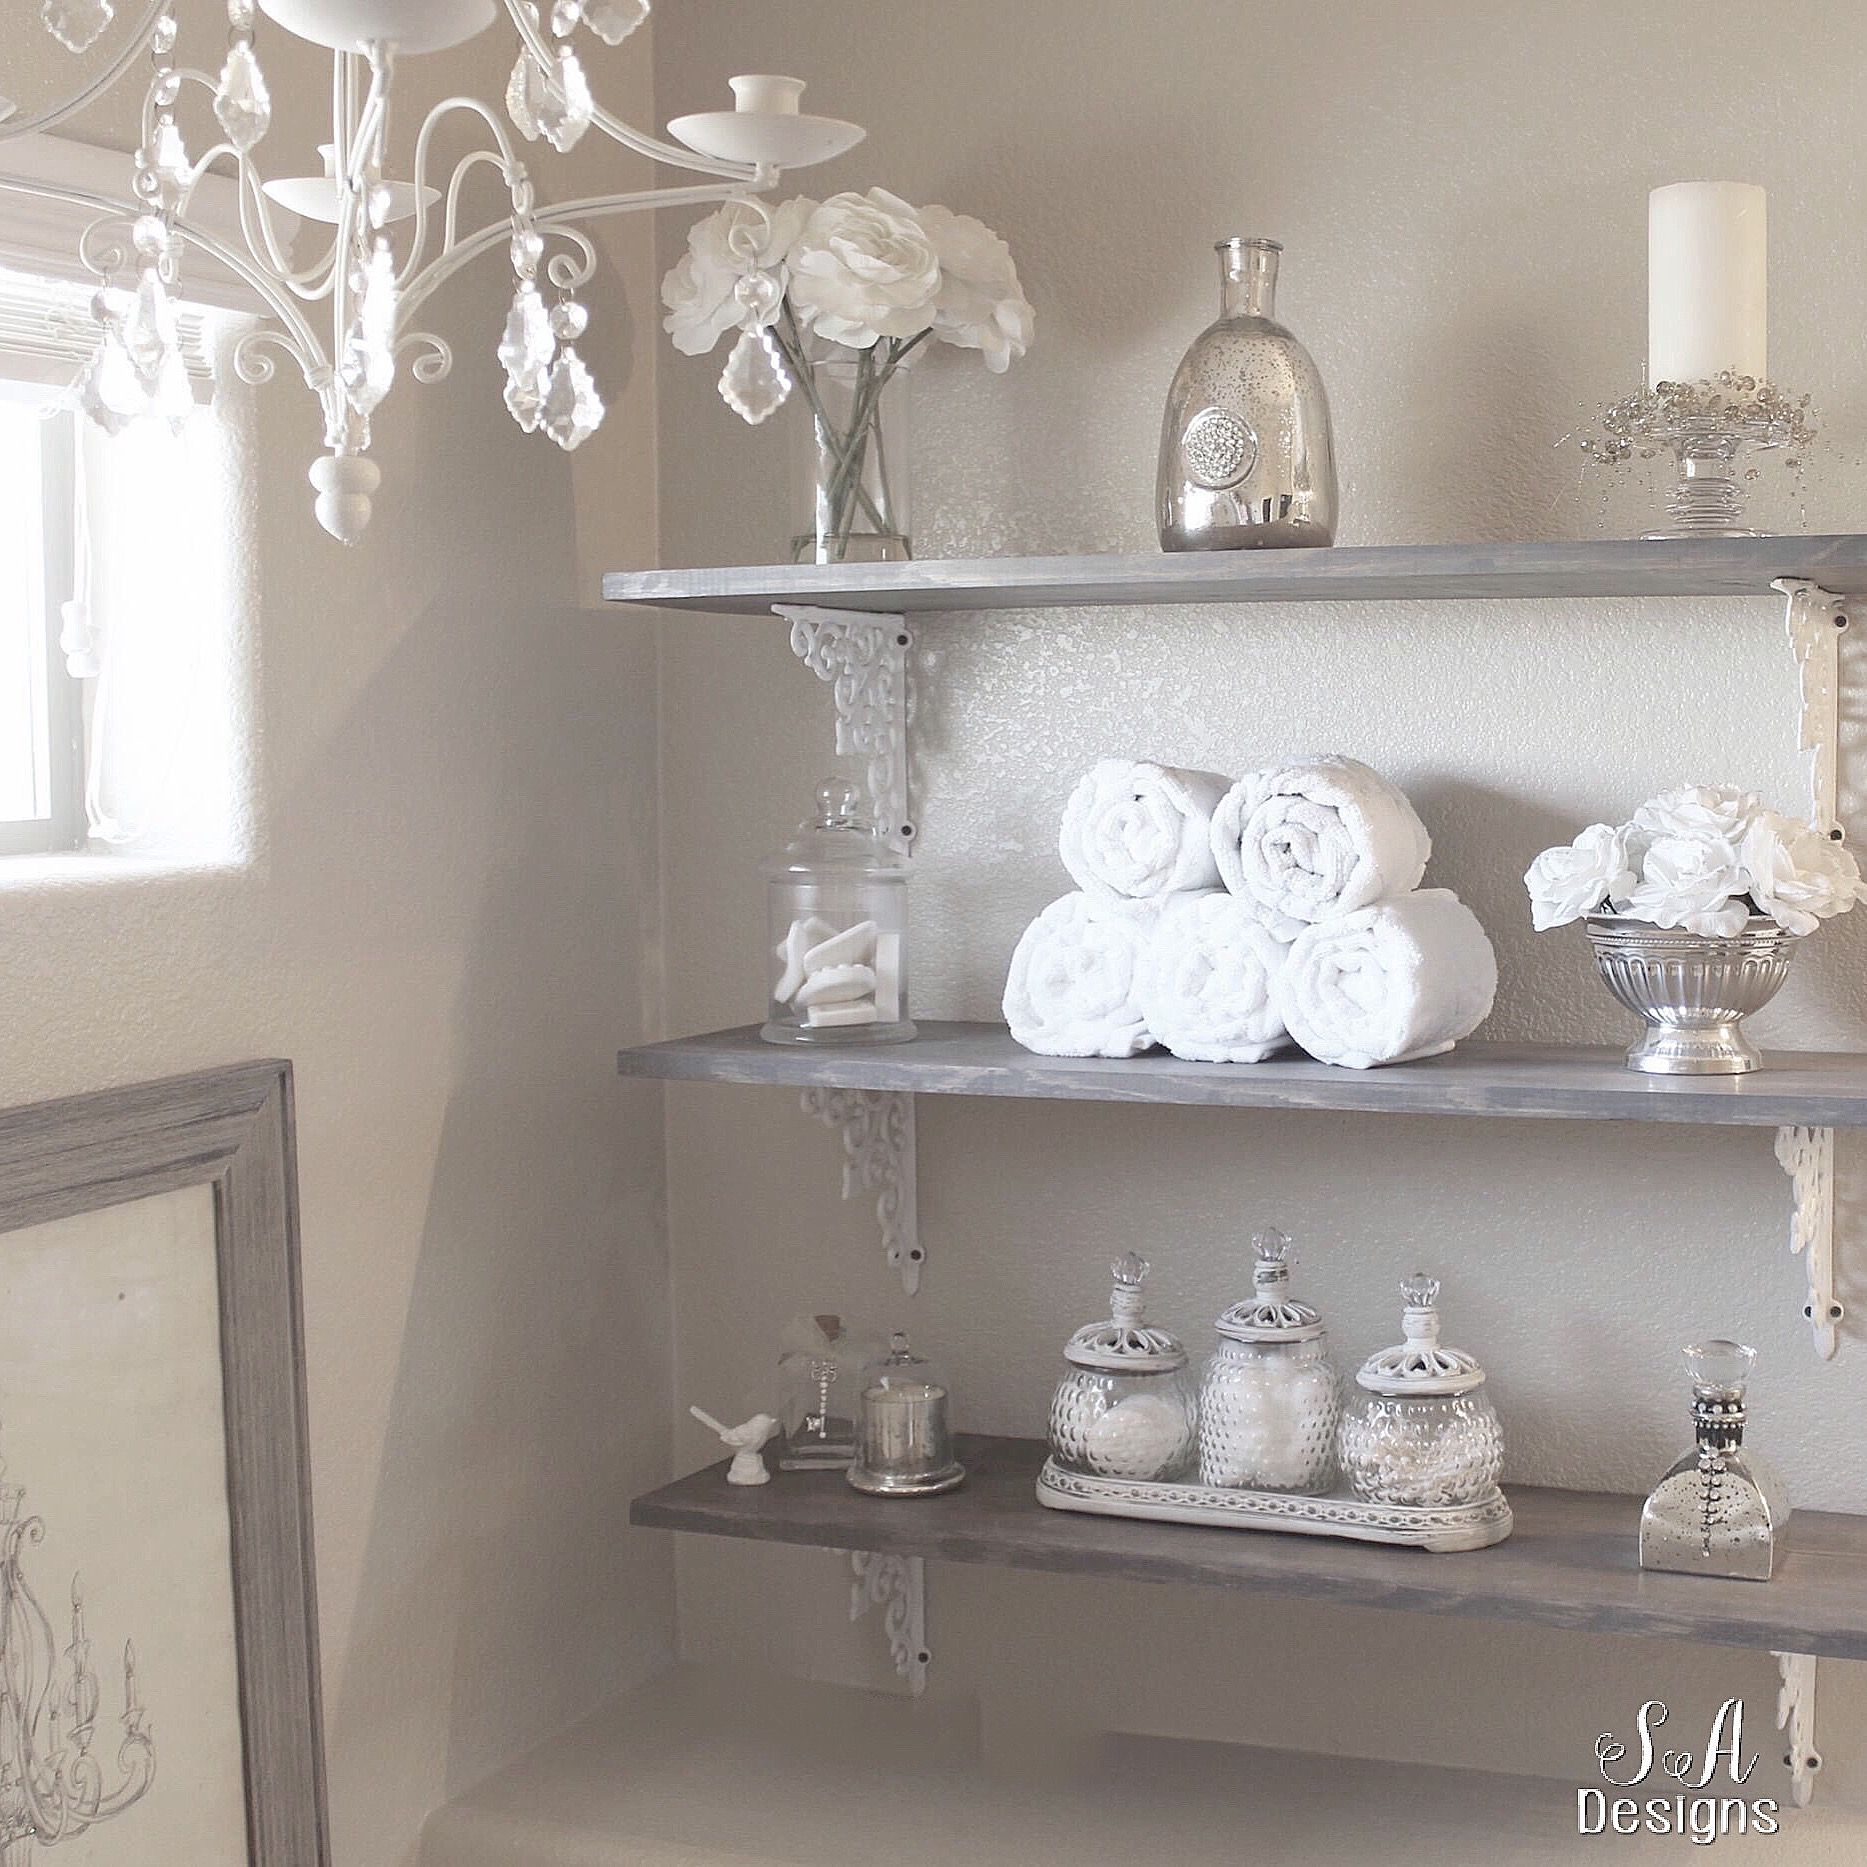 Merveilleux DIY Master Bathroom Shelving With A Rustic Glam Feel. Create Your Own  Shelving With This Simple Tutorial! Anyone Can Do It!